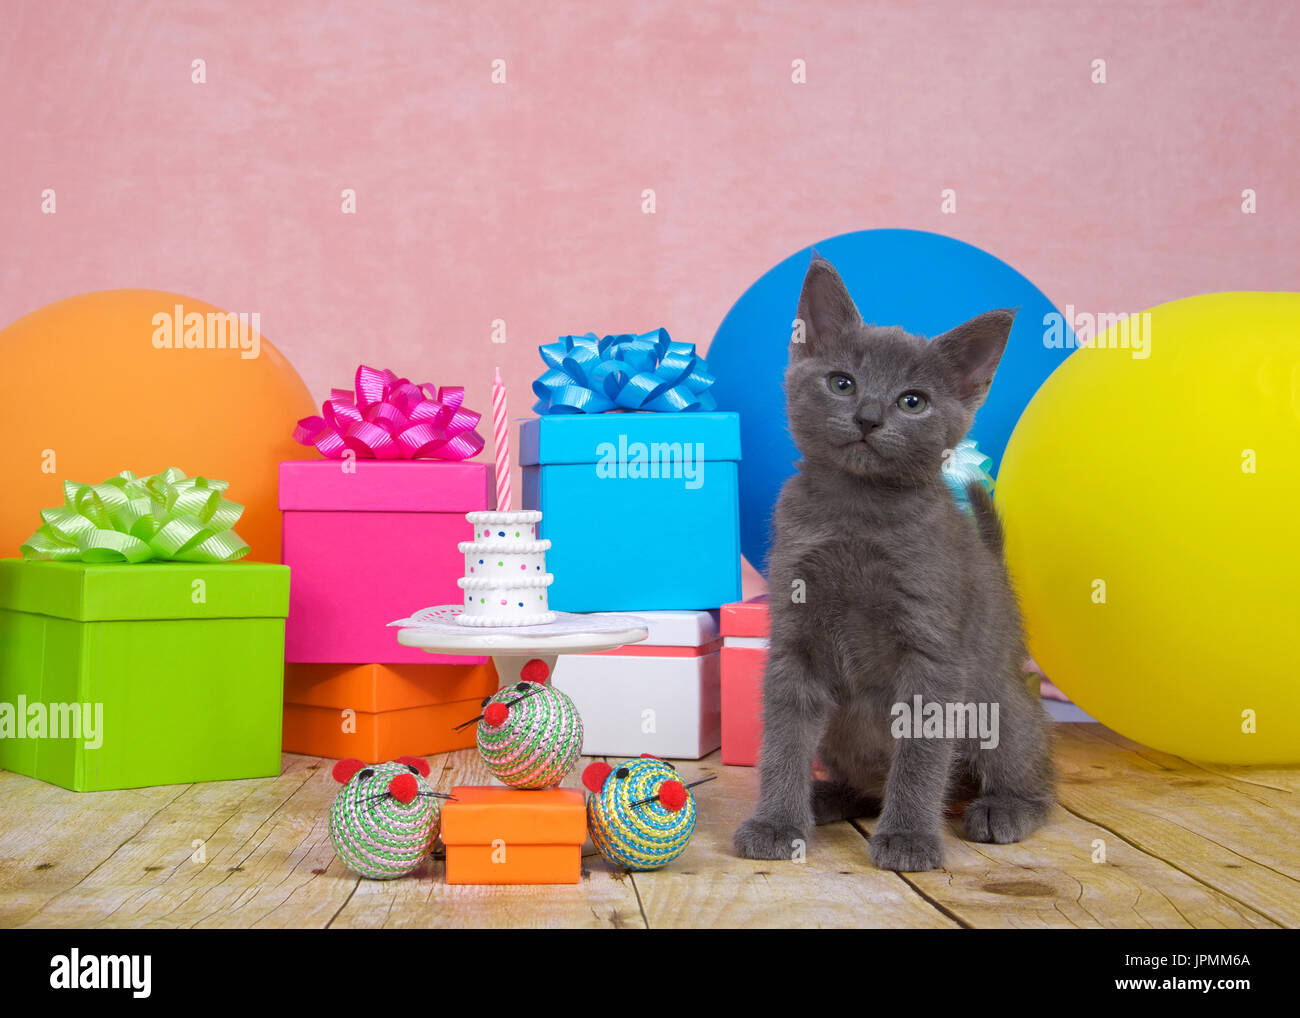 Fluffy Gray Kitten On Wood Floor Sitting Next To White Porcelain Table With Tiny Birthday Cake